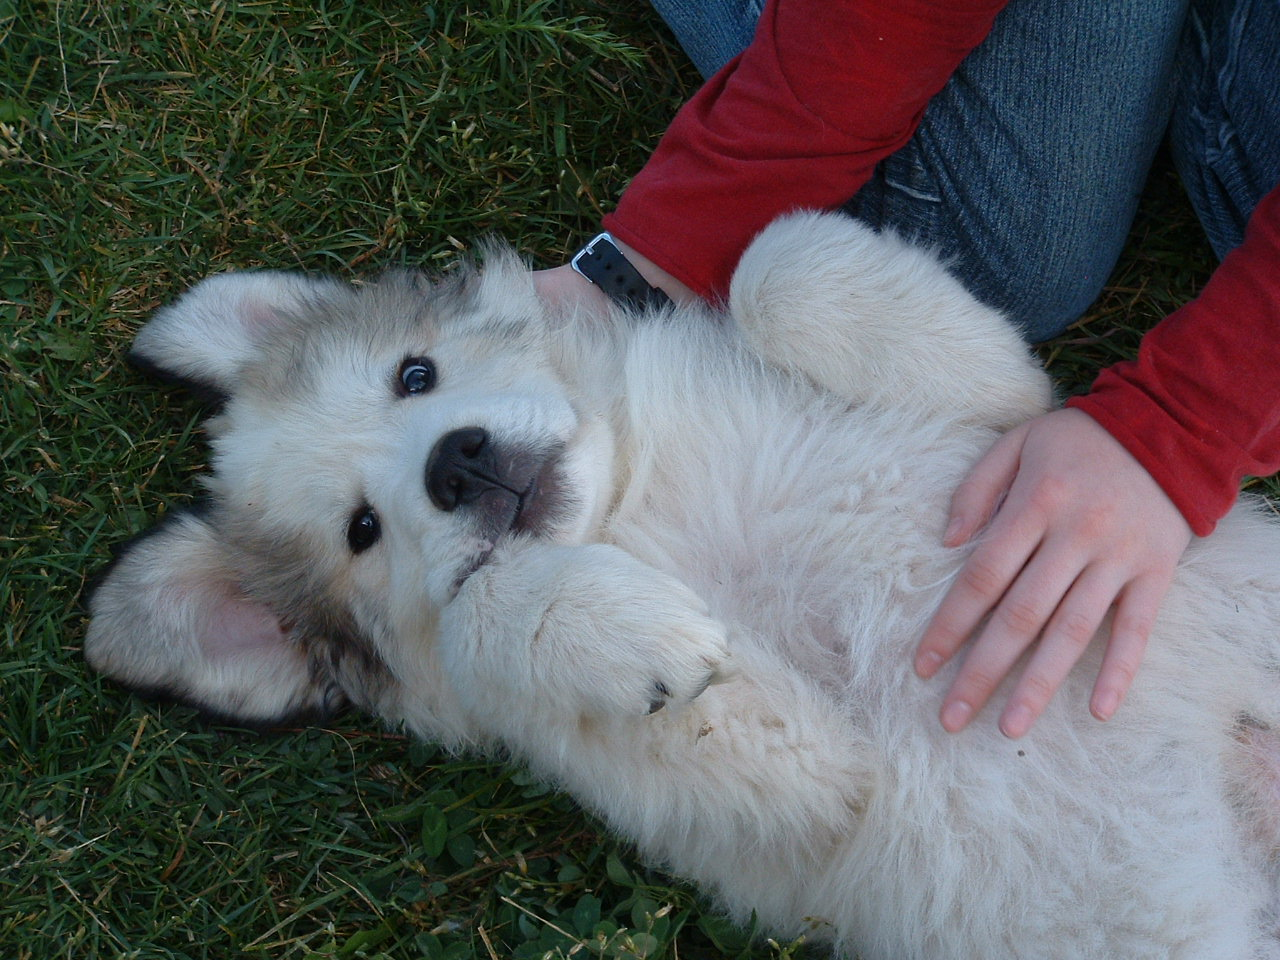 Rural revolution pregnant with puppies but if anyone is interested in a great pyrenees puppy let the folks at agape ranch know theyll be taking deposits when the puppies are born fandeluxe Image collections